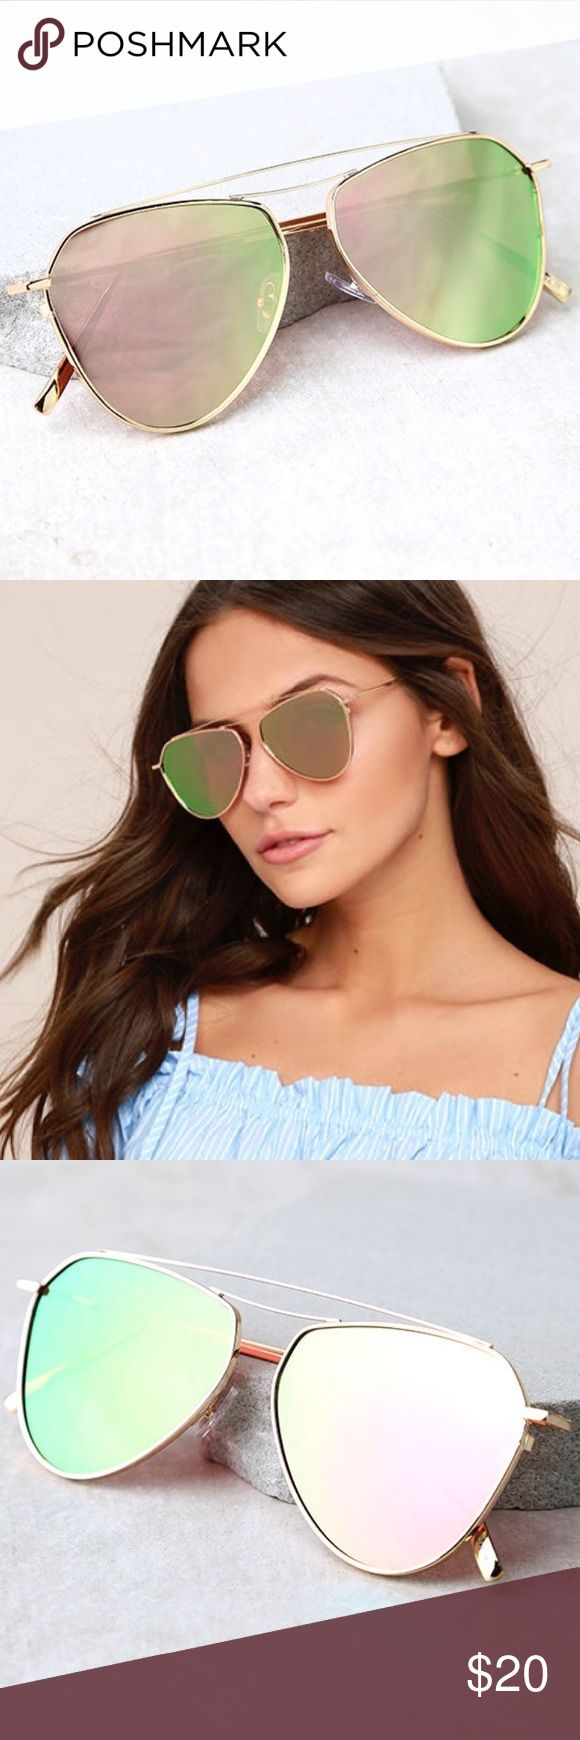 Rose gold aviator sunglasses Brand new without tags, never worn! Frames are rose gold. Price firm unless bundled! Accessories Sunglasses